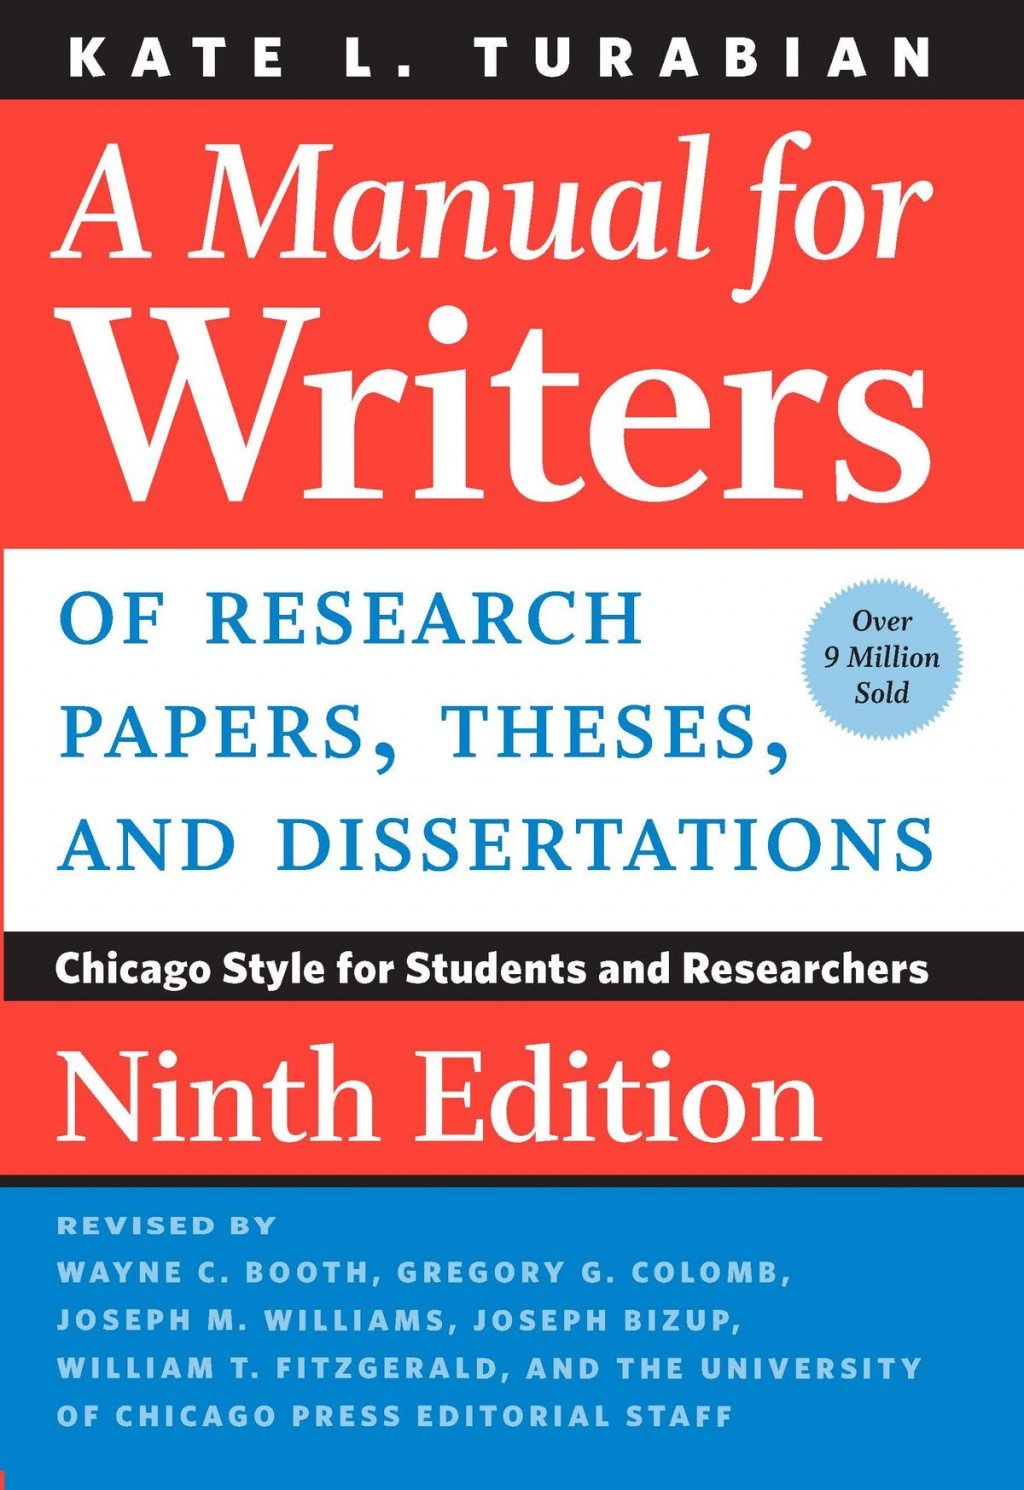 001 Research Paper Manual For Writers Of Papers Theses And Dissertations Turabian Pdf Ninth Wonderful A Large